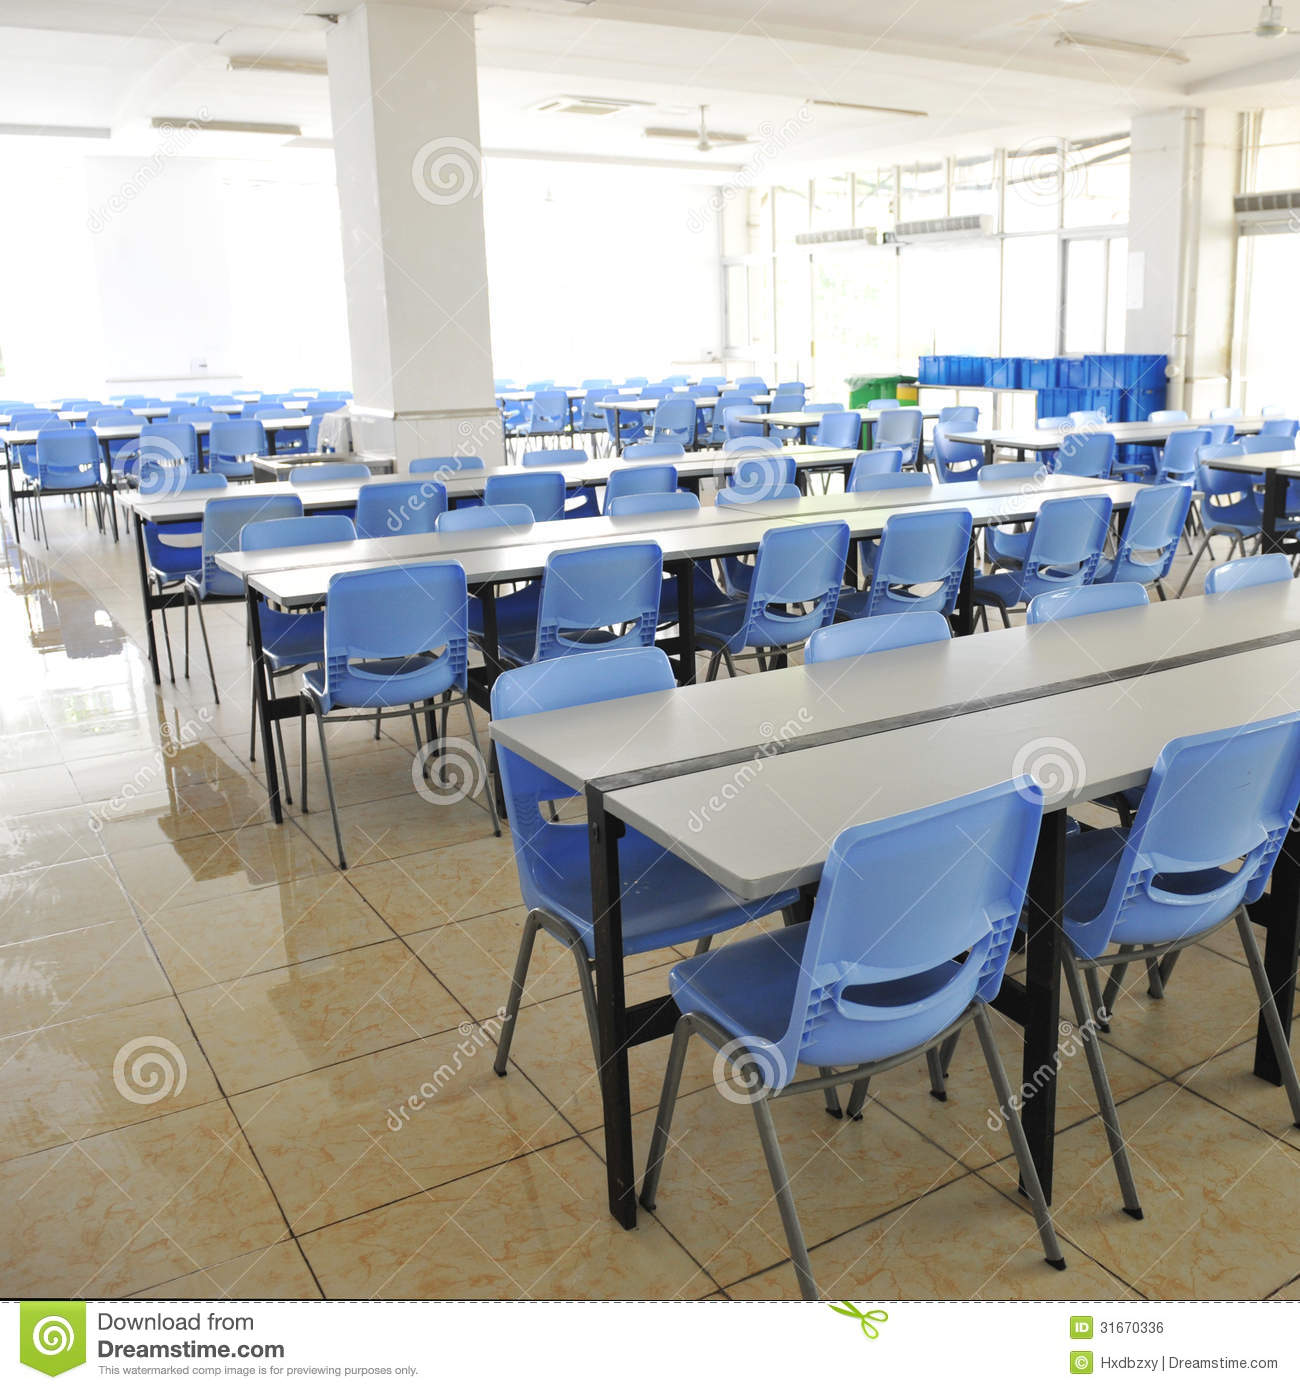 Clean cafeteria tables - Clean School Cafeteria Royalty Free Stock Image Image 31670336